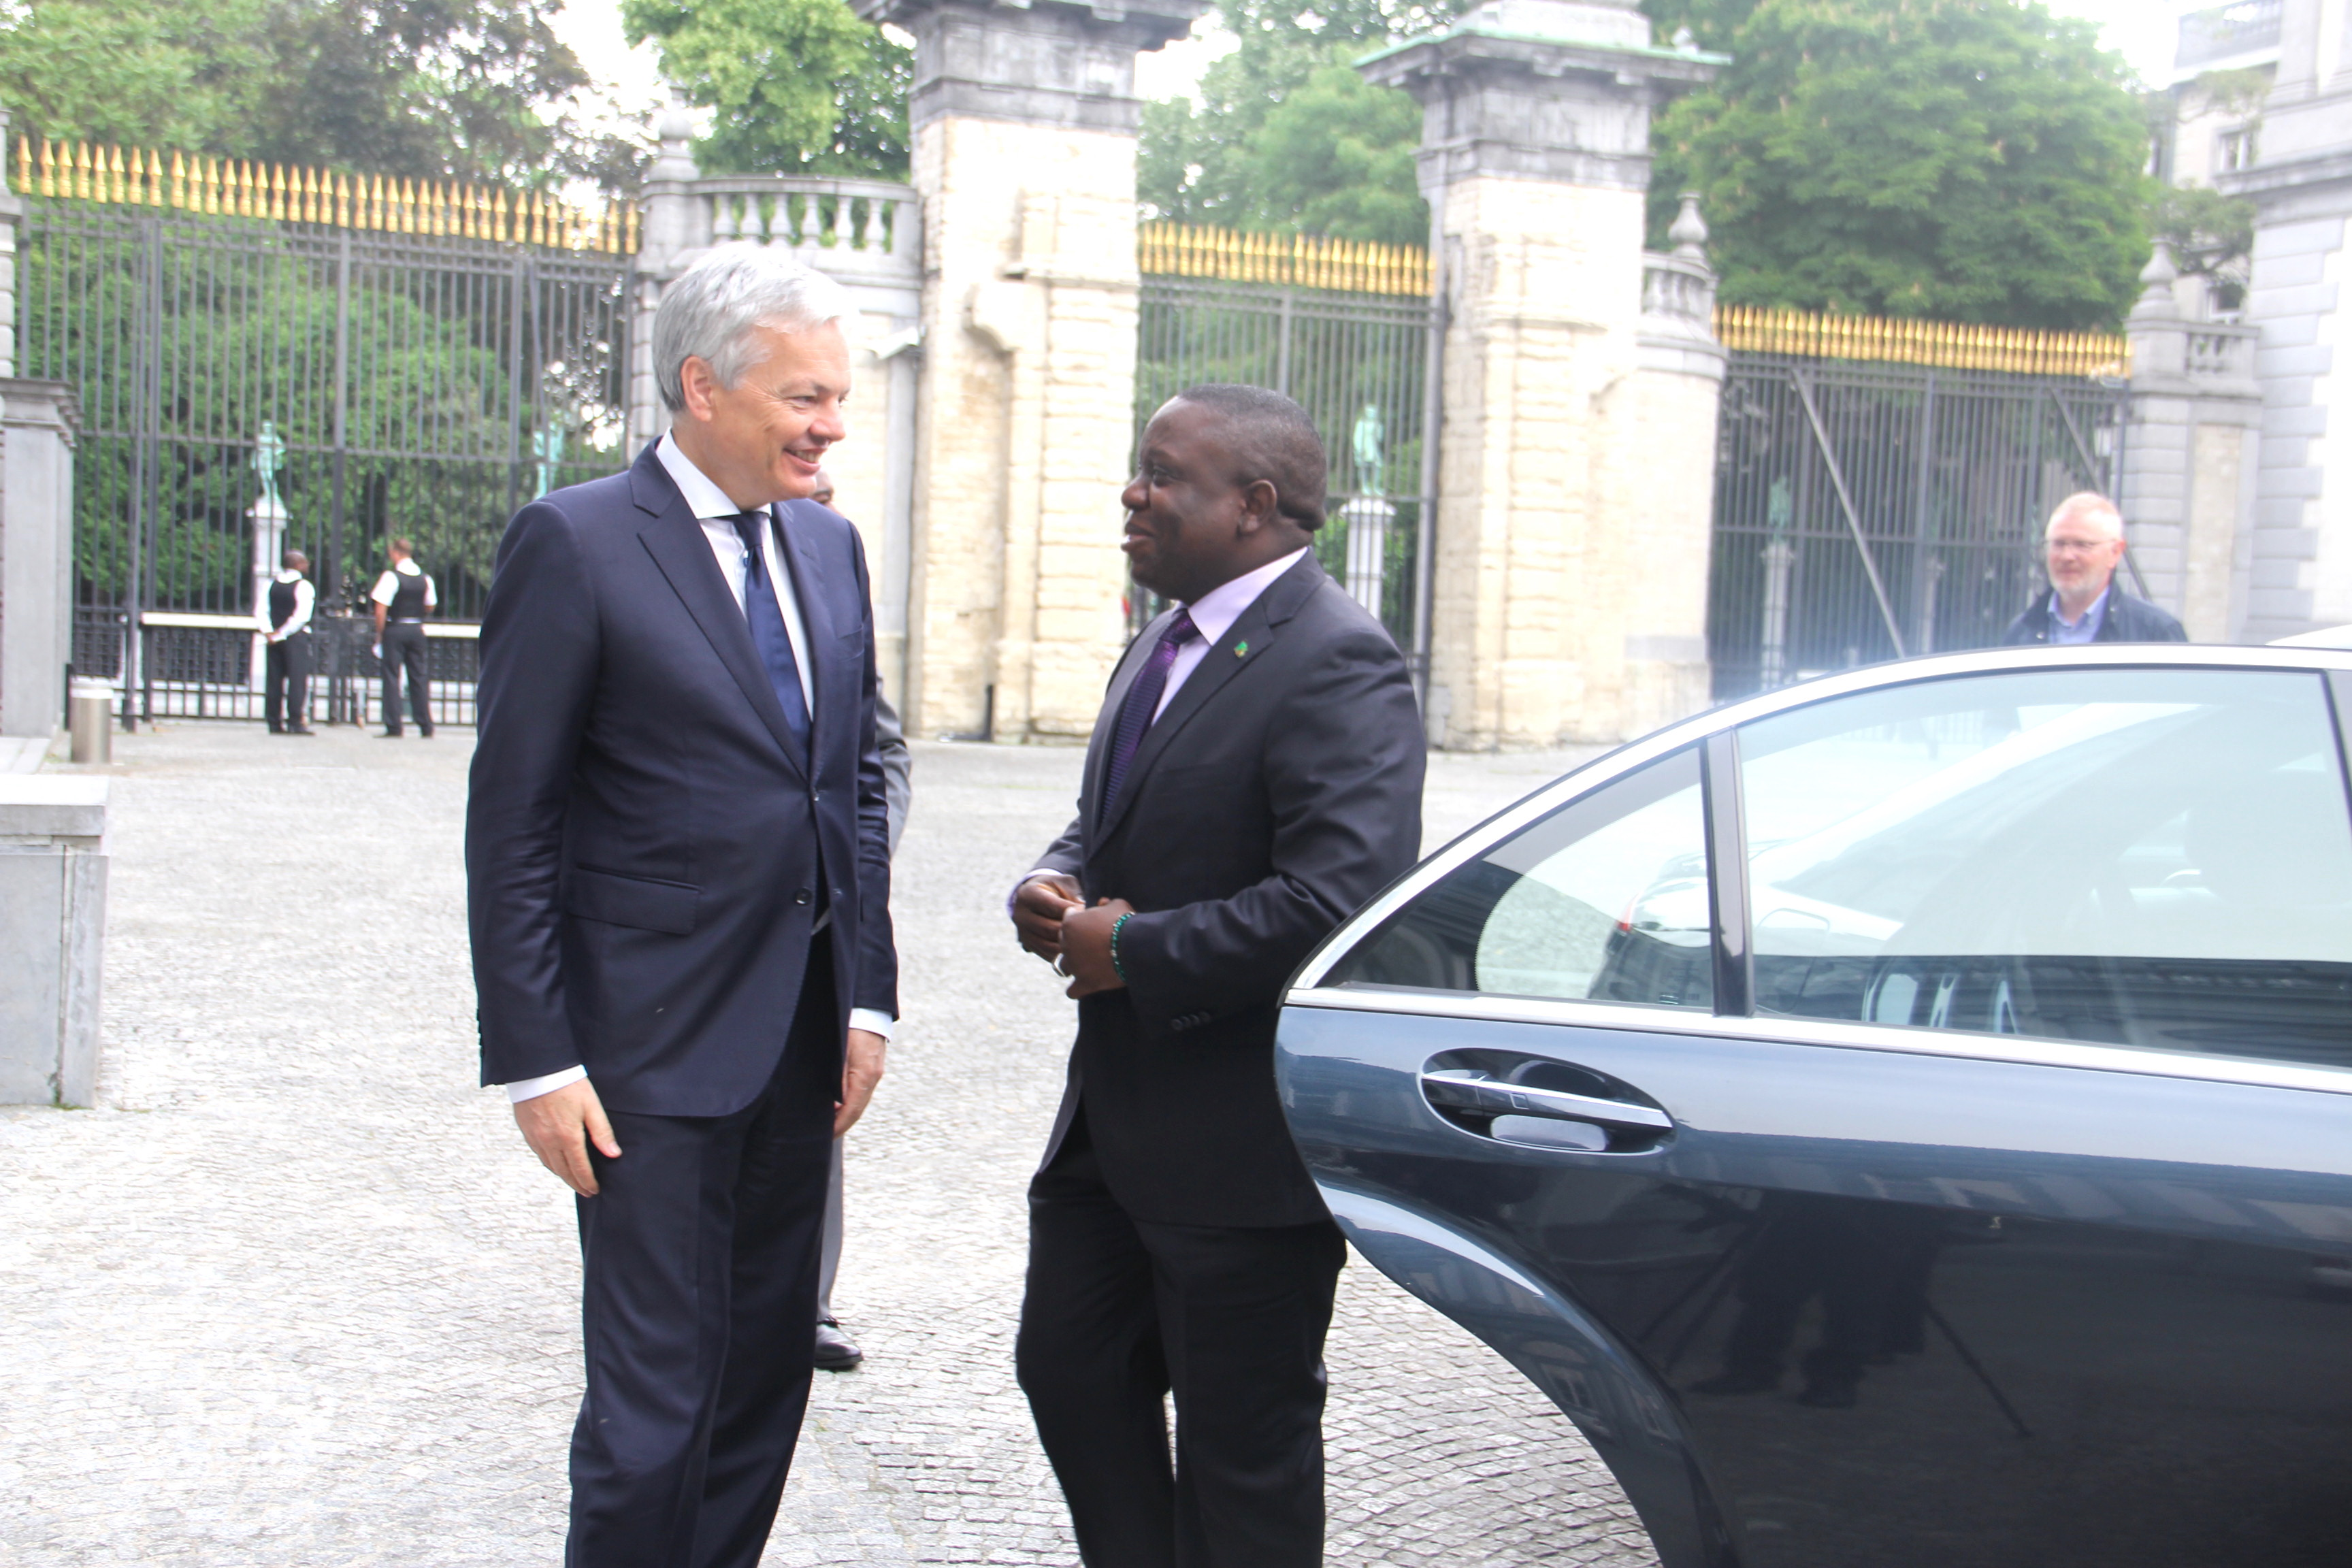 http://zebru.org/images/hon.%20kalaba%20with%20belgian%20foreign%20affairs%20minister%20in%20brussels.jpg